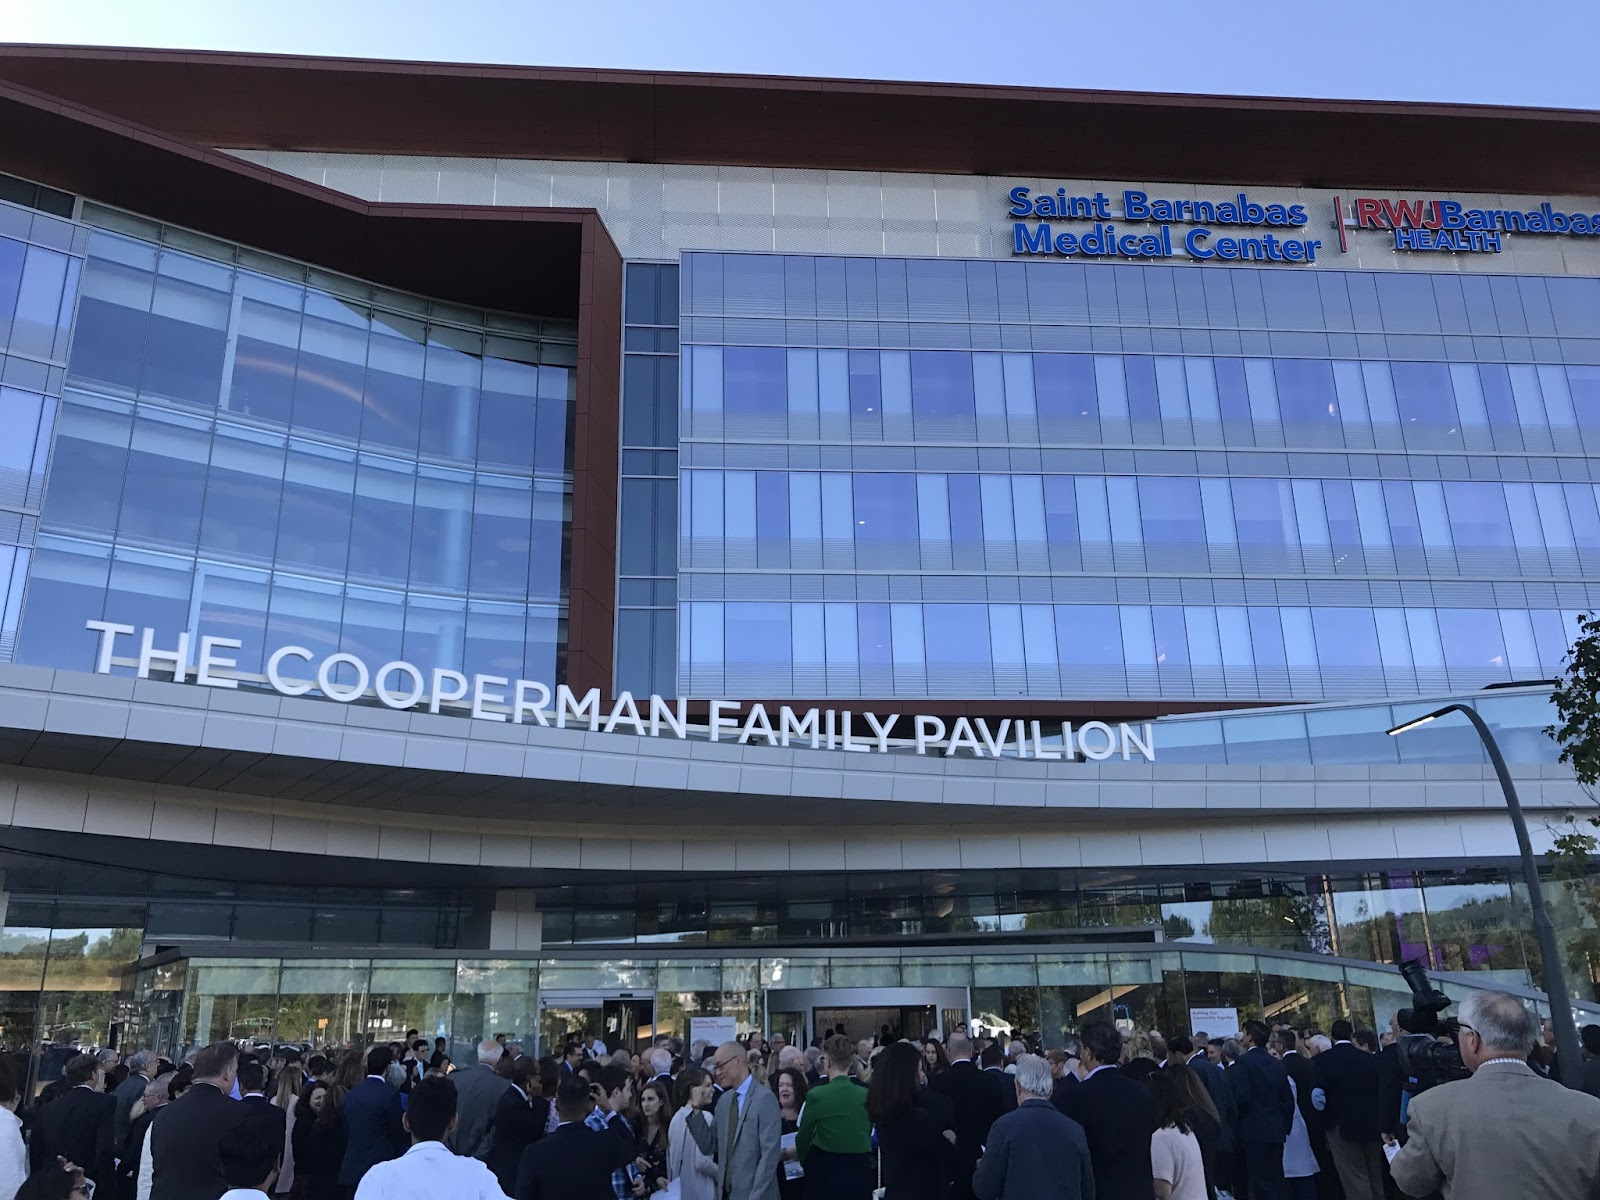 News Release: The Harman Group Celebrates the Grand Opening